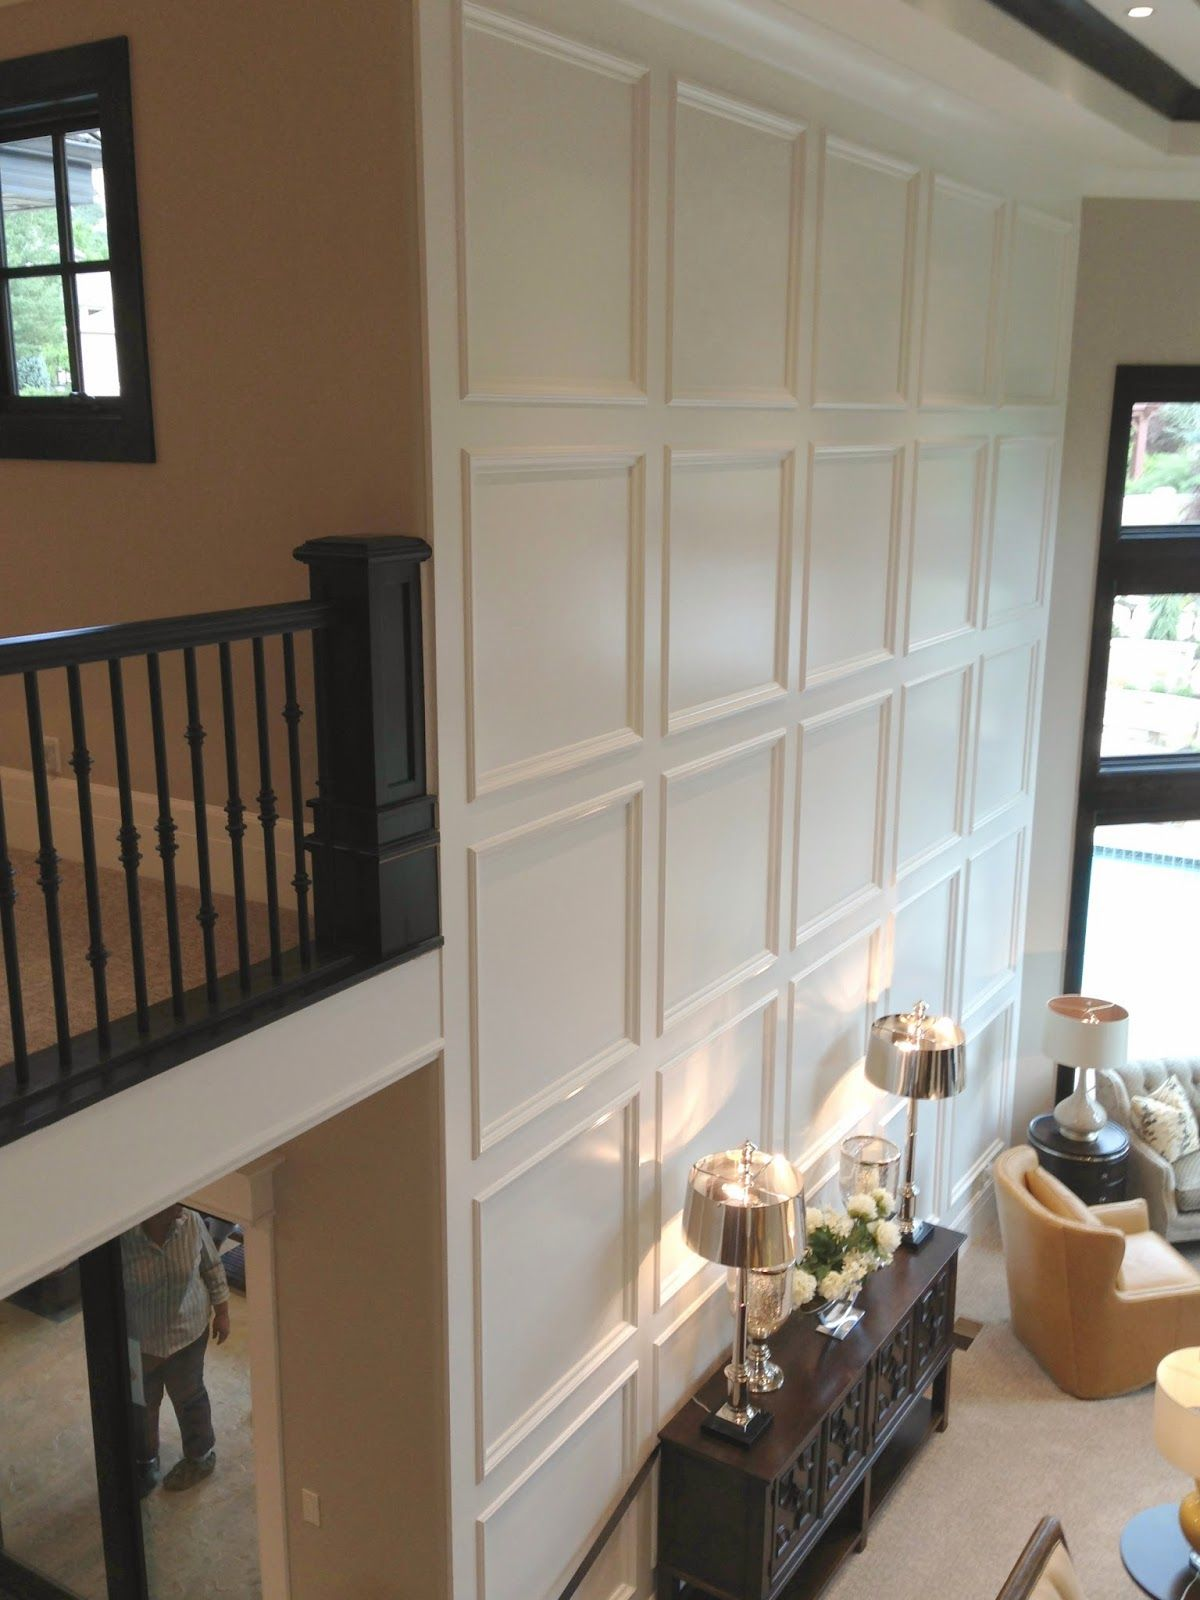 Window moulding ideas  the aqua house utah valley parade of homes round up whatus